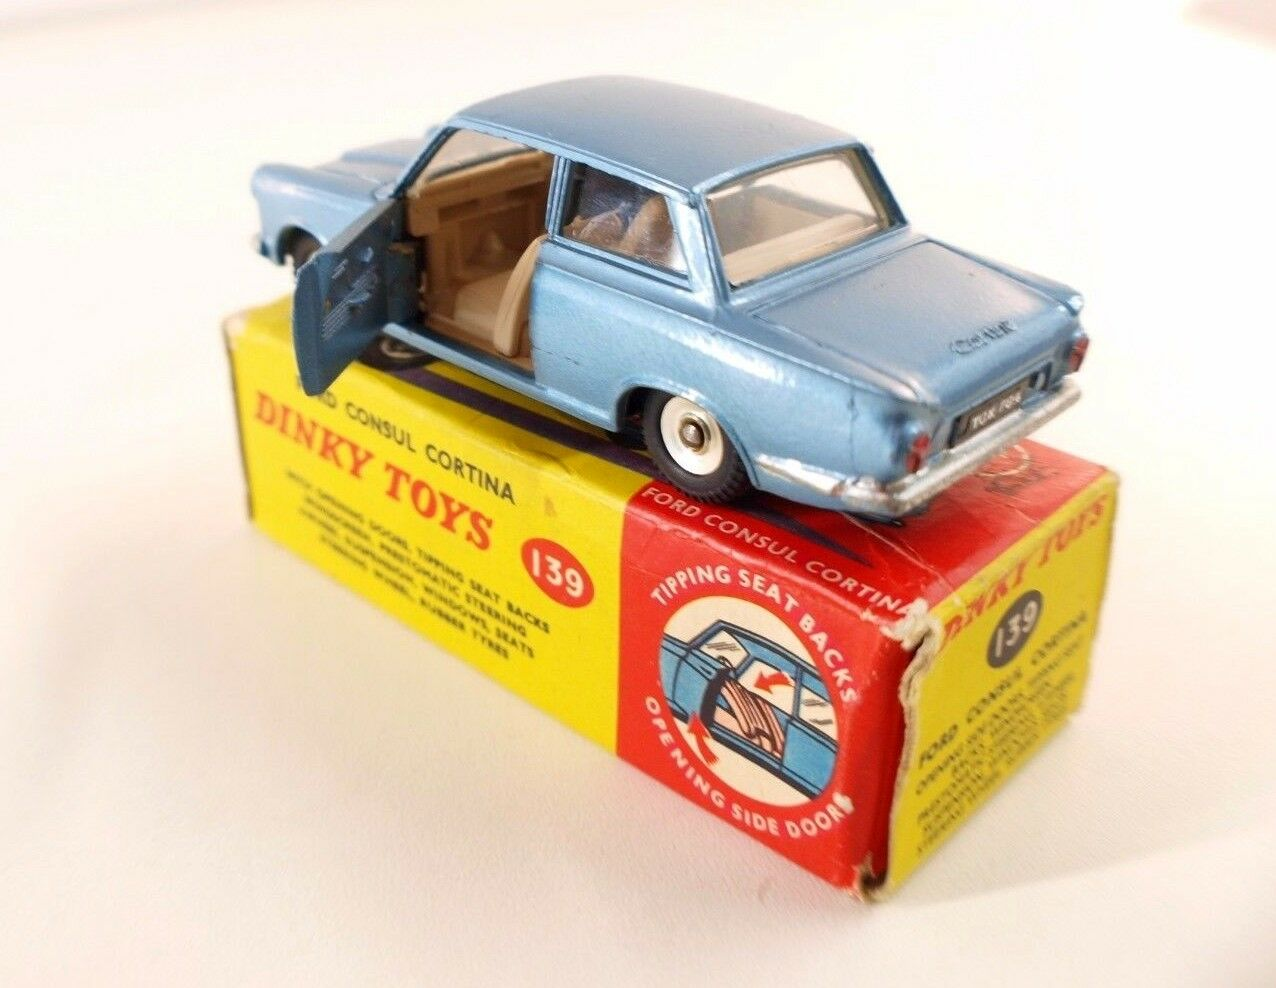 Dinky Toys Toys Toys GB n° 139 Ford Consul Cortina en boite d9d9fb